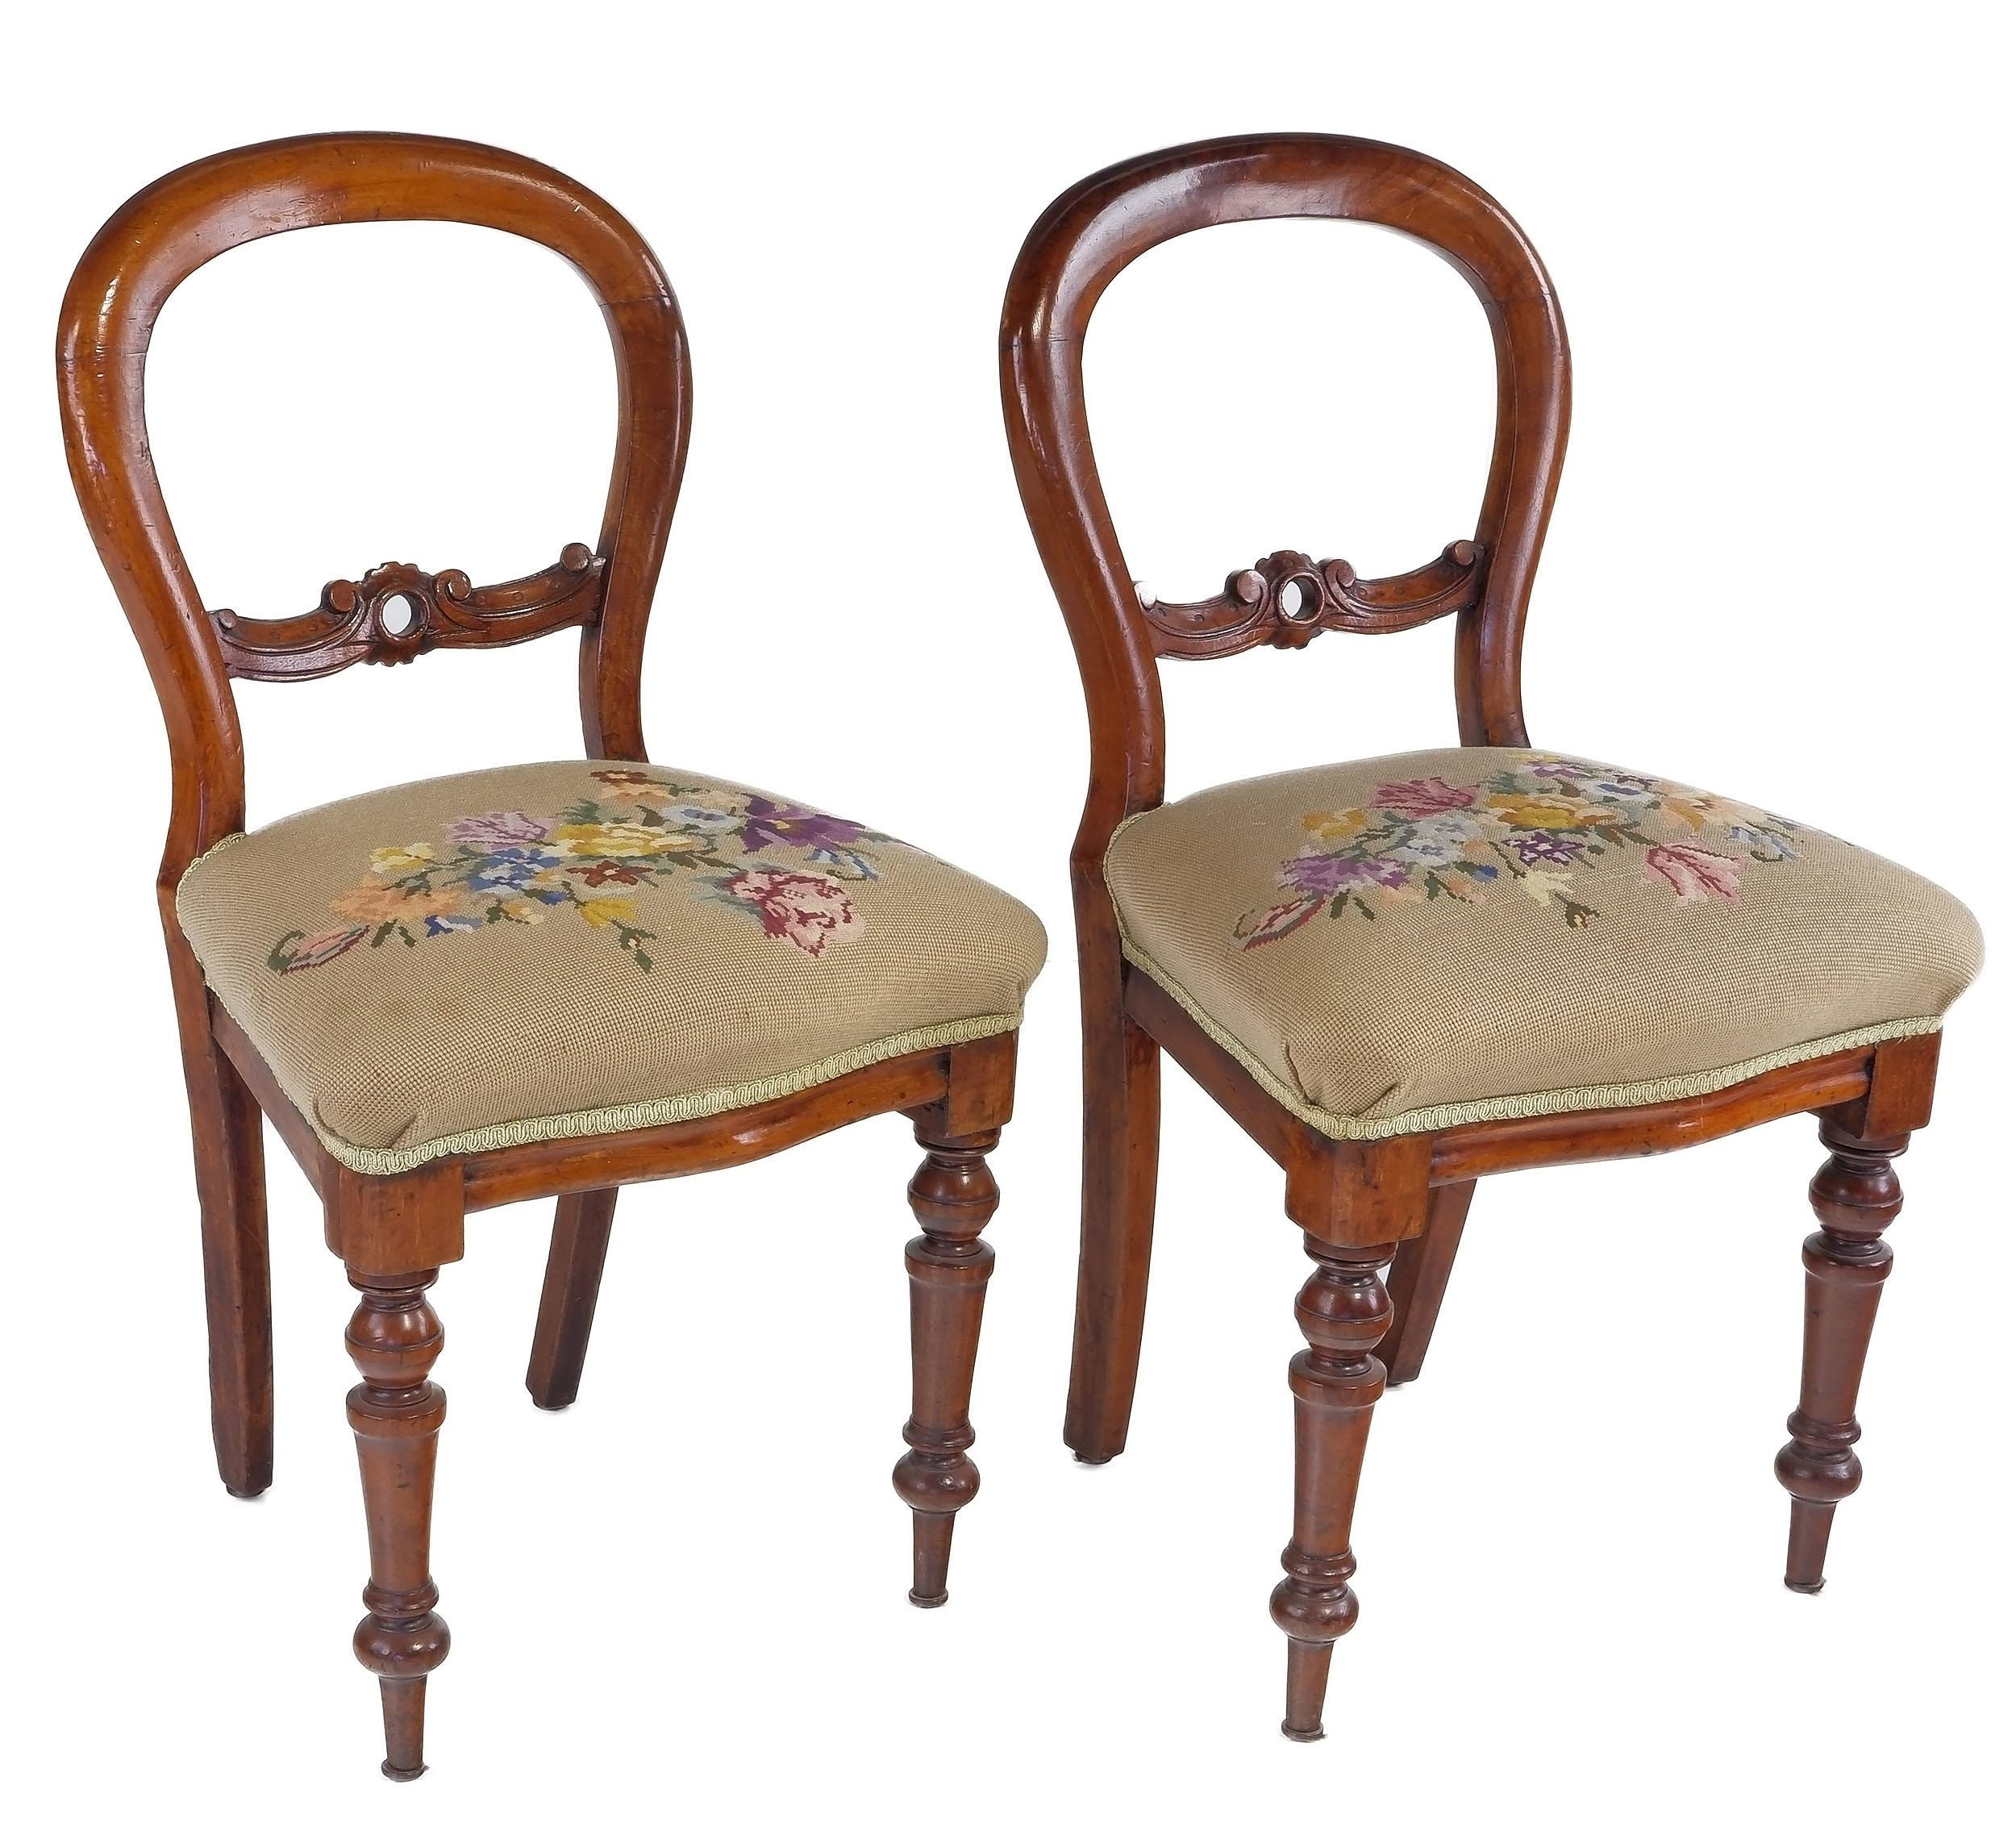 'Pair of Victorian Mahogany Balloon Back Chairs Circa 1880'